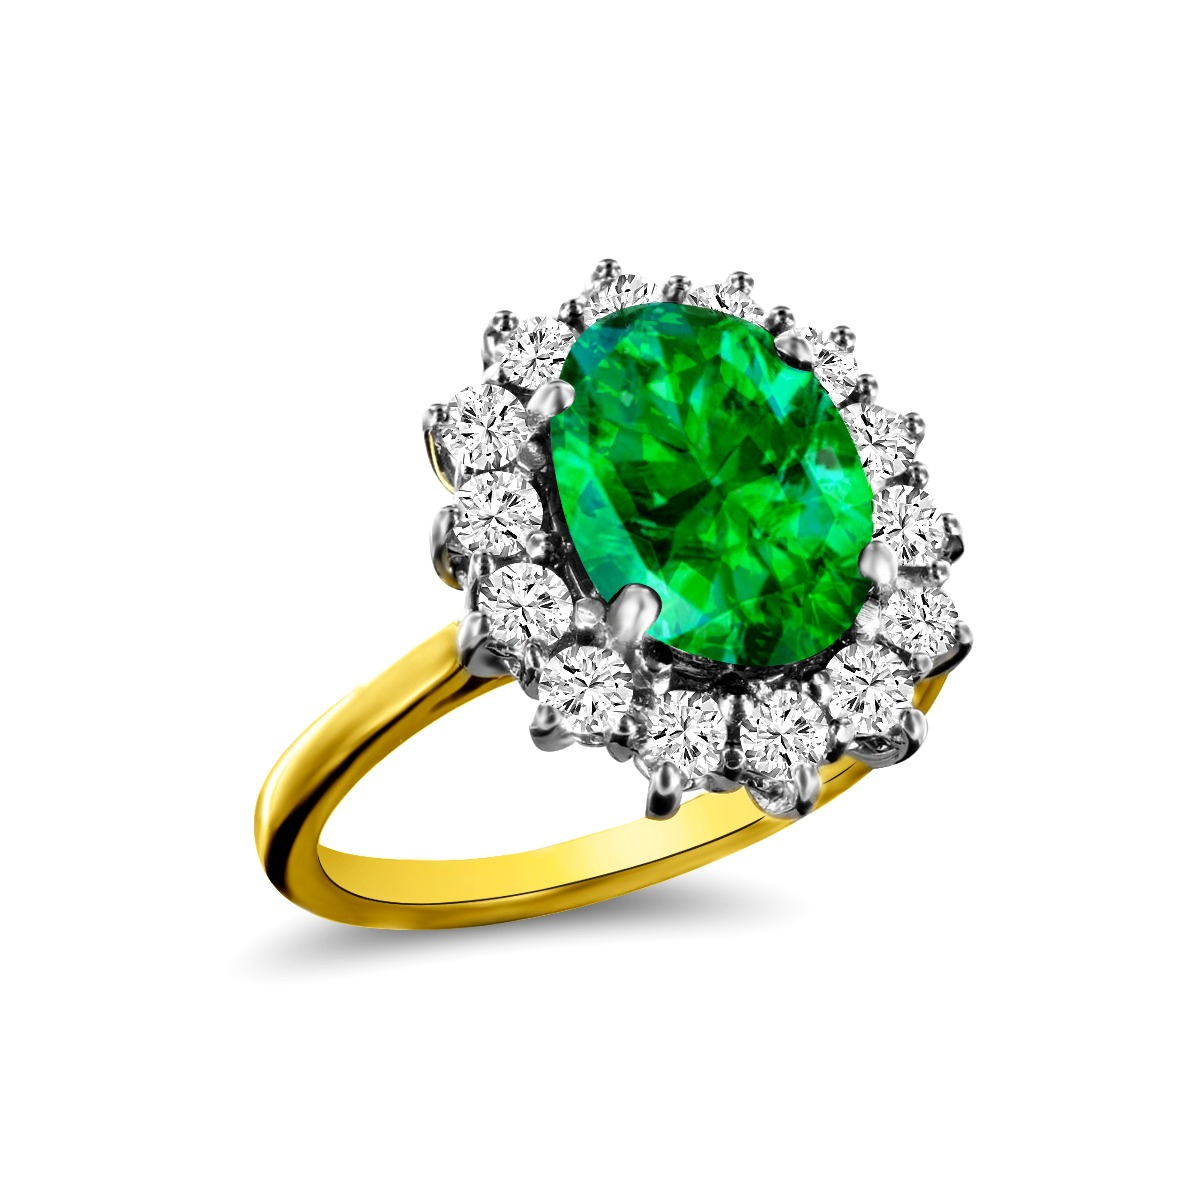 2.19ct Oval Cut Emerald & Diamond Cluster Ring   18K Yellow Gold